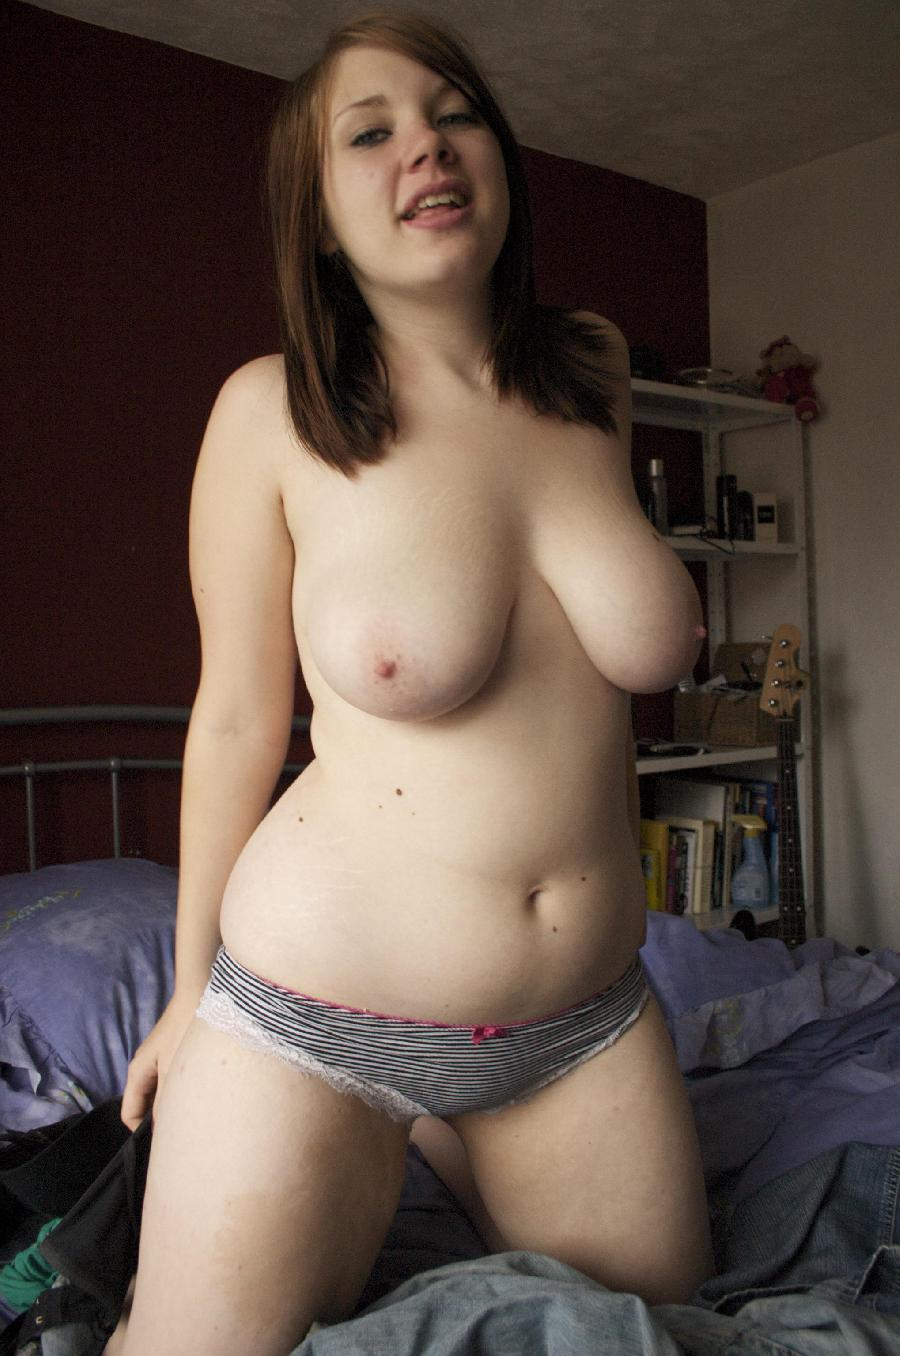 Busty Girl Porn fat busty girl nude . porn galleries. comments: 3